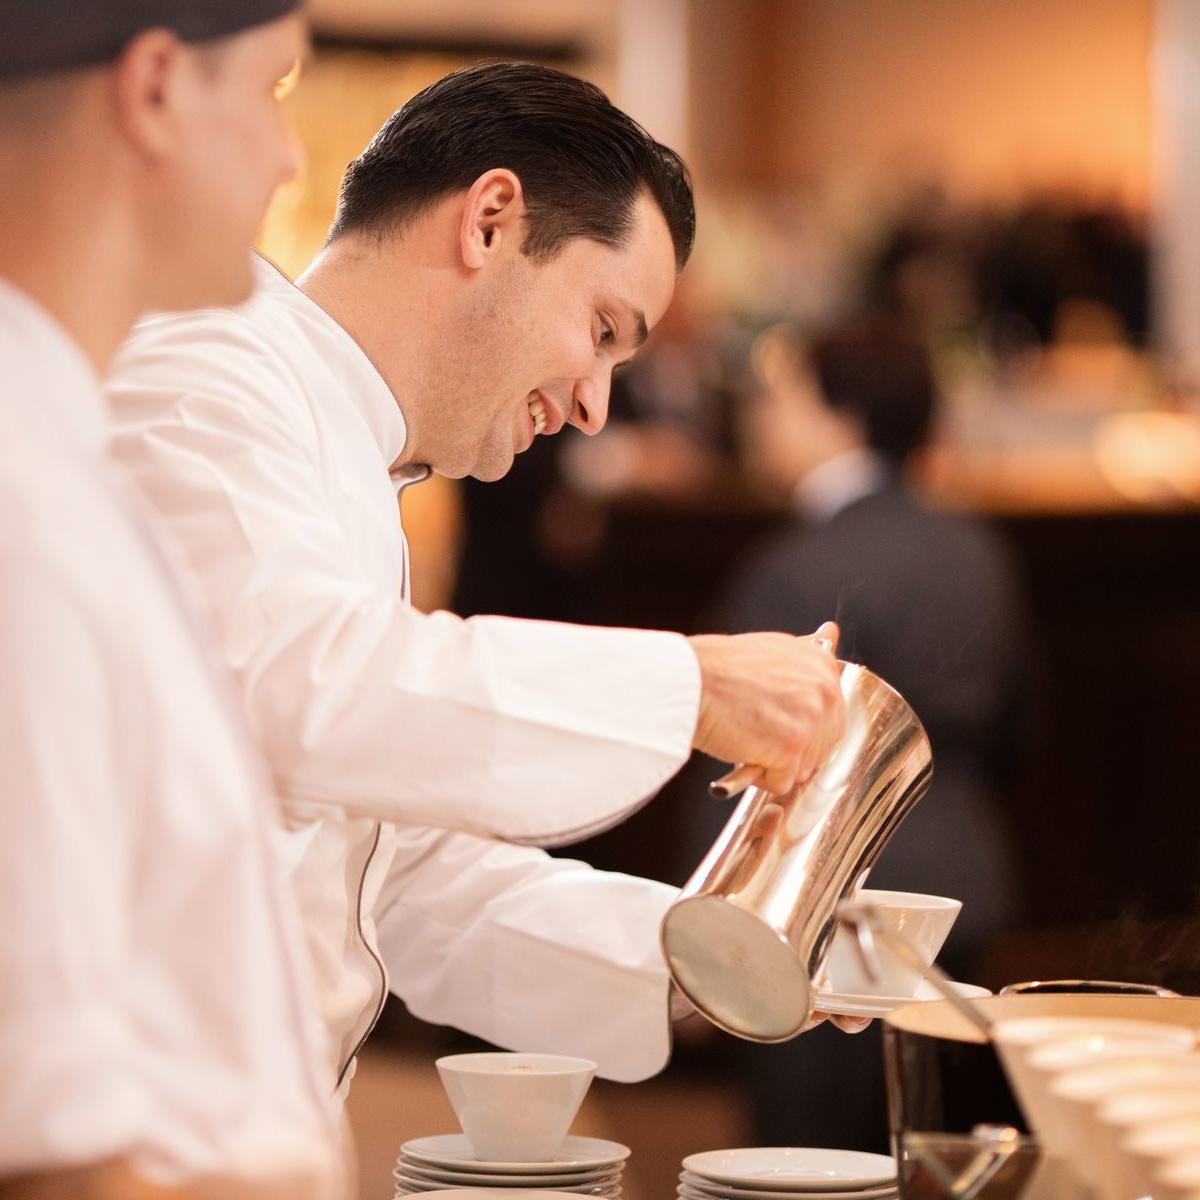 chef pouring coffee